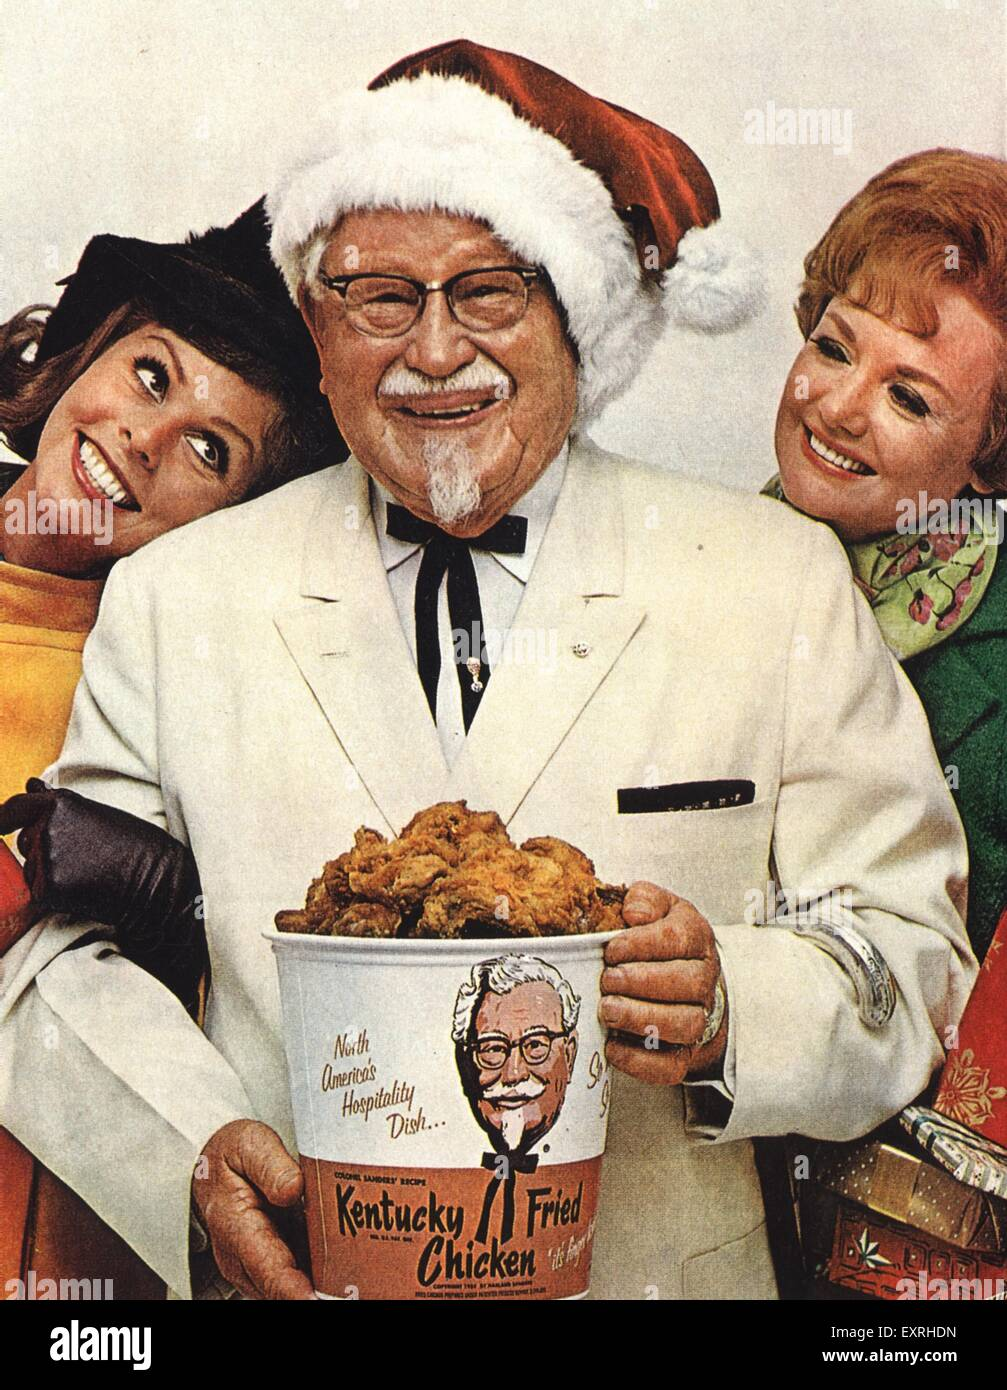 1960s USA KFC Christmas Magazine Advert Stock Photo: 85341137 - Alamy